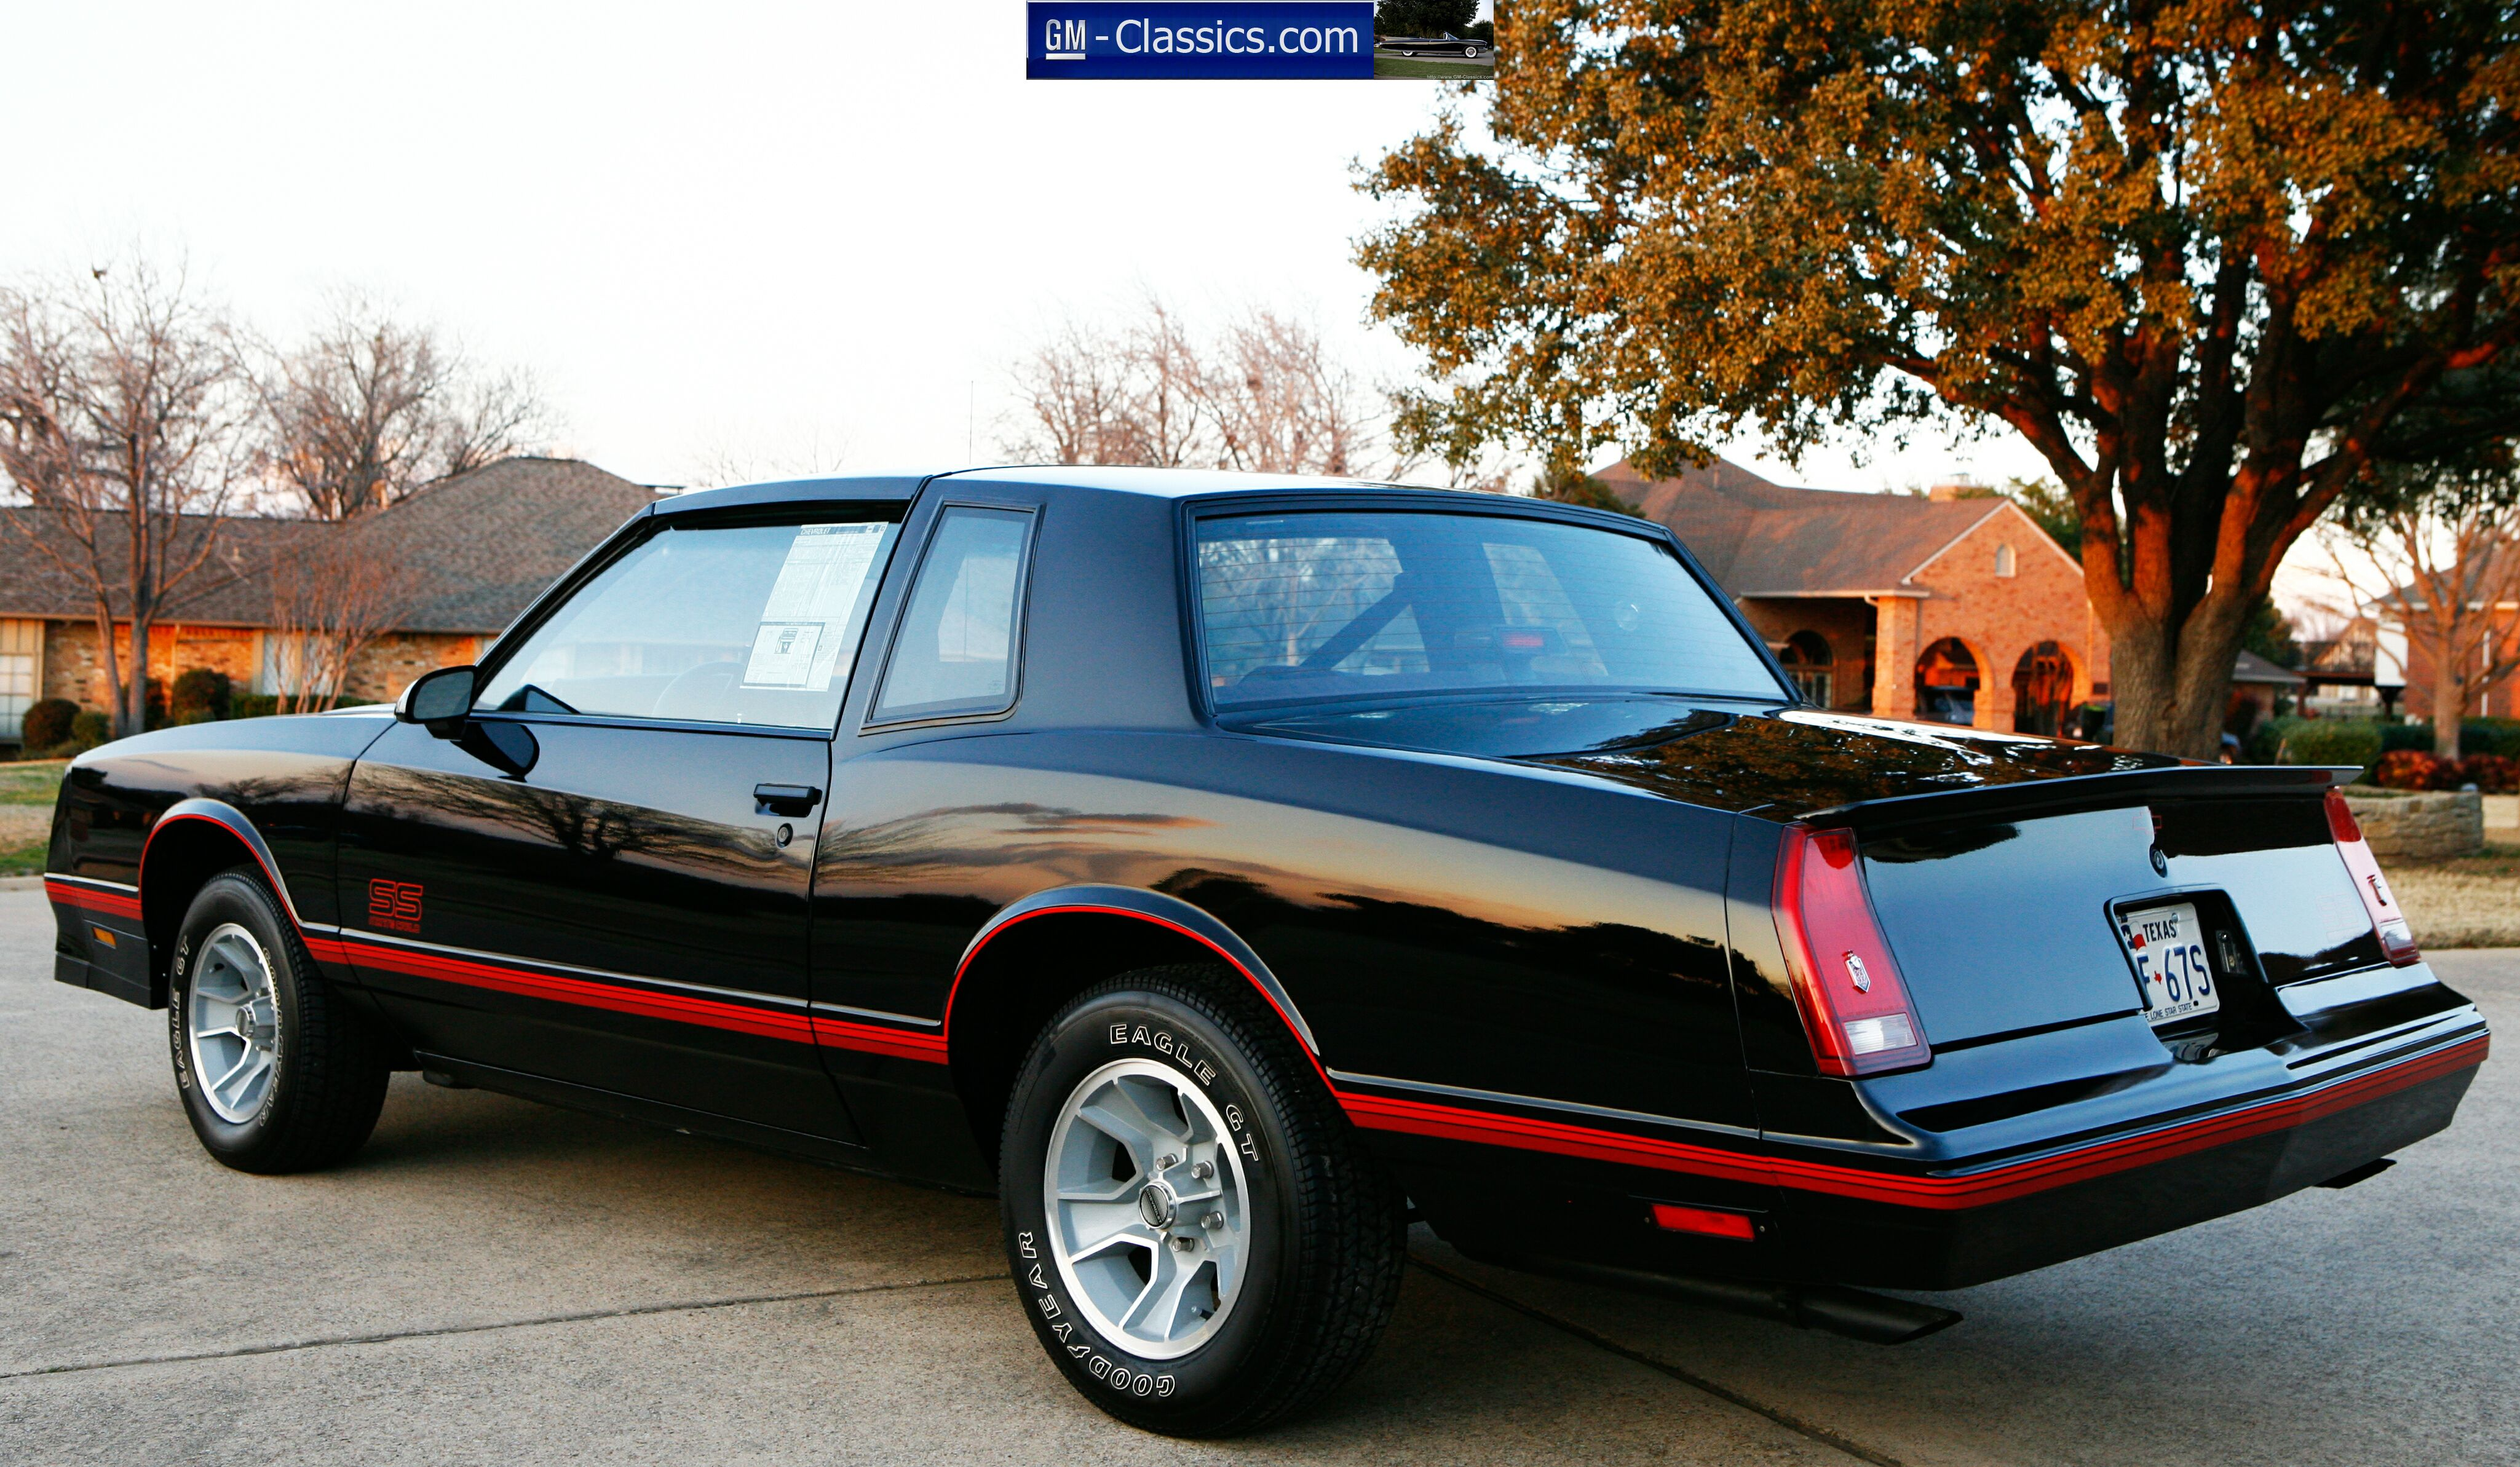 1988 Chevrolet Monte Carlo Information And Photos